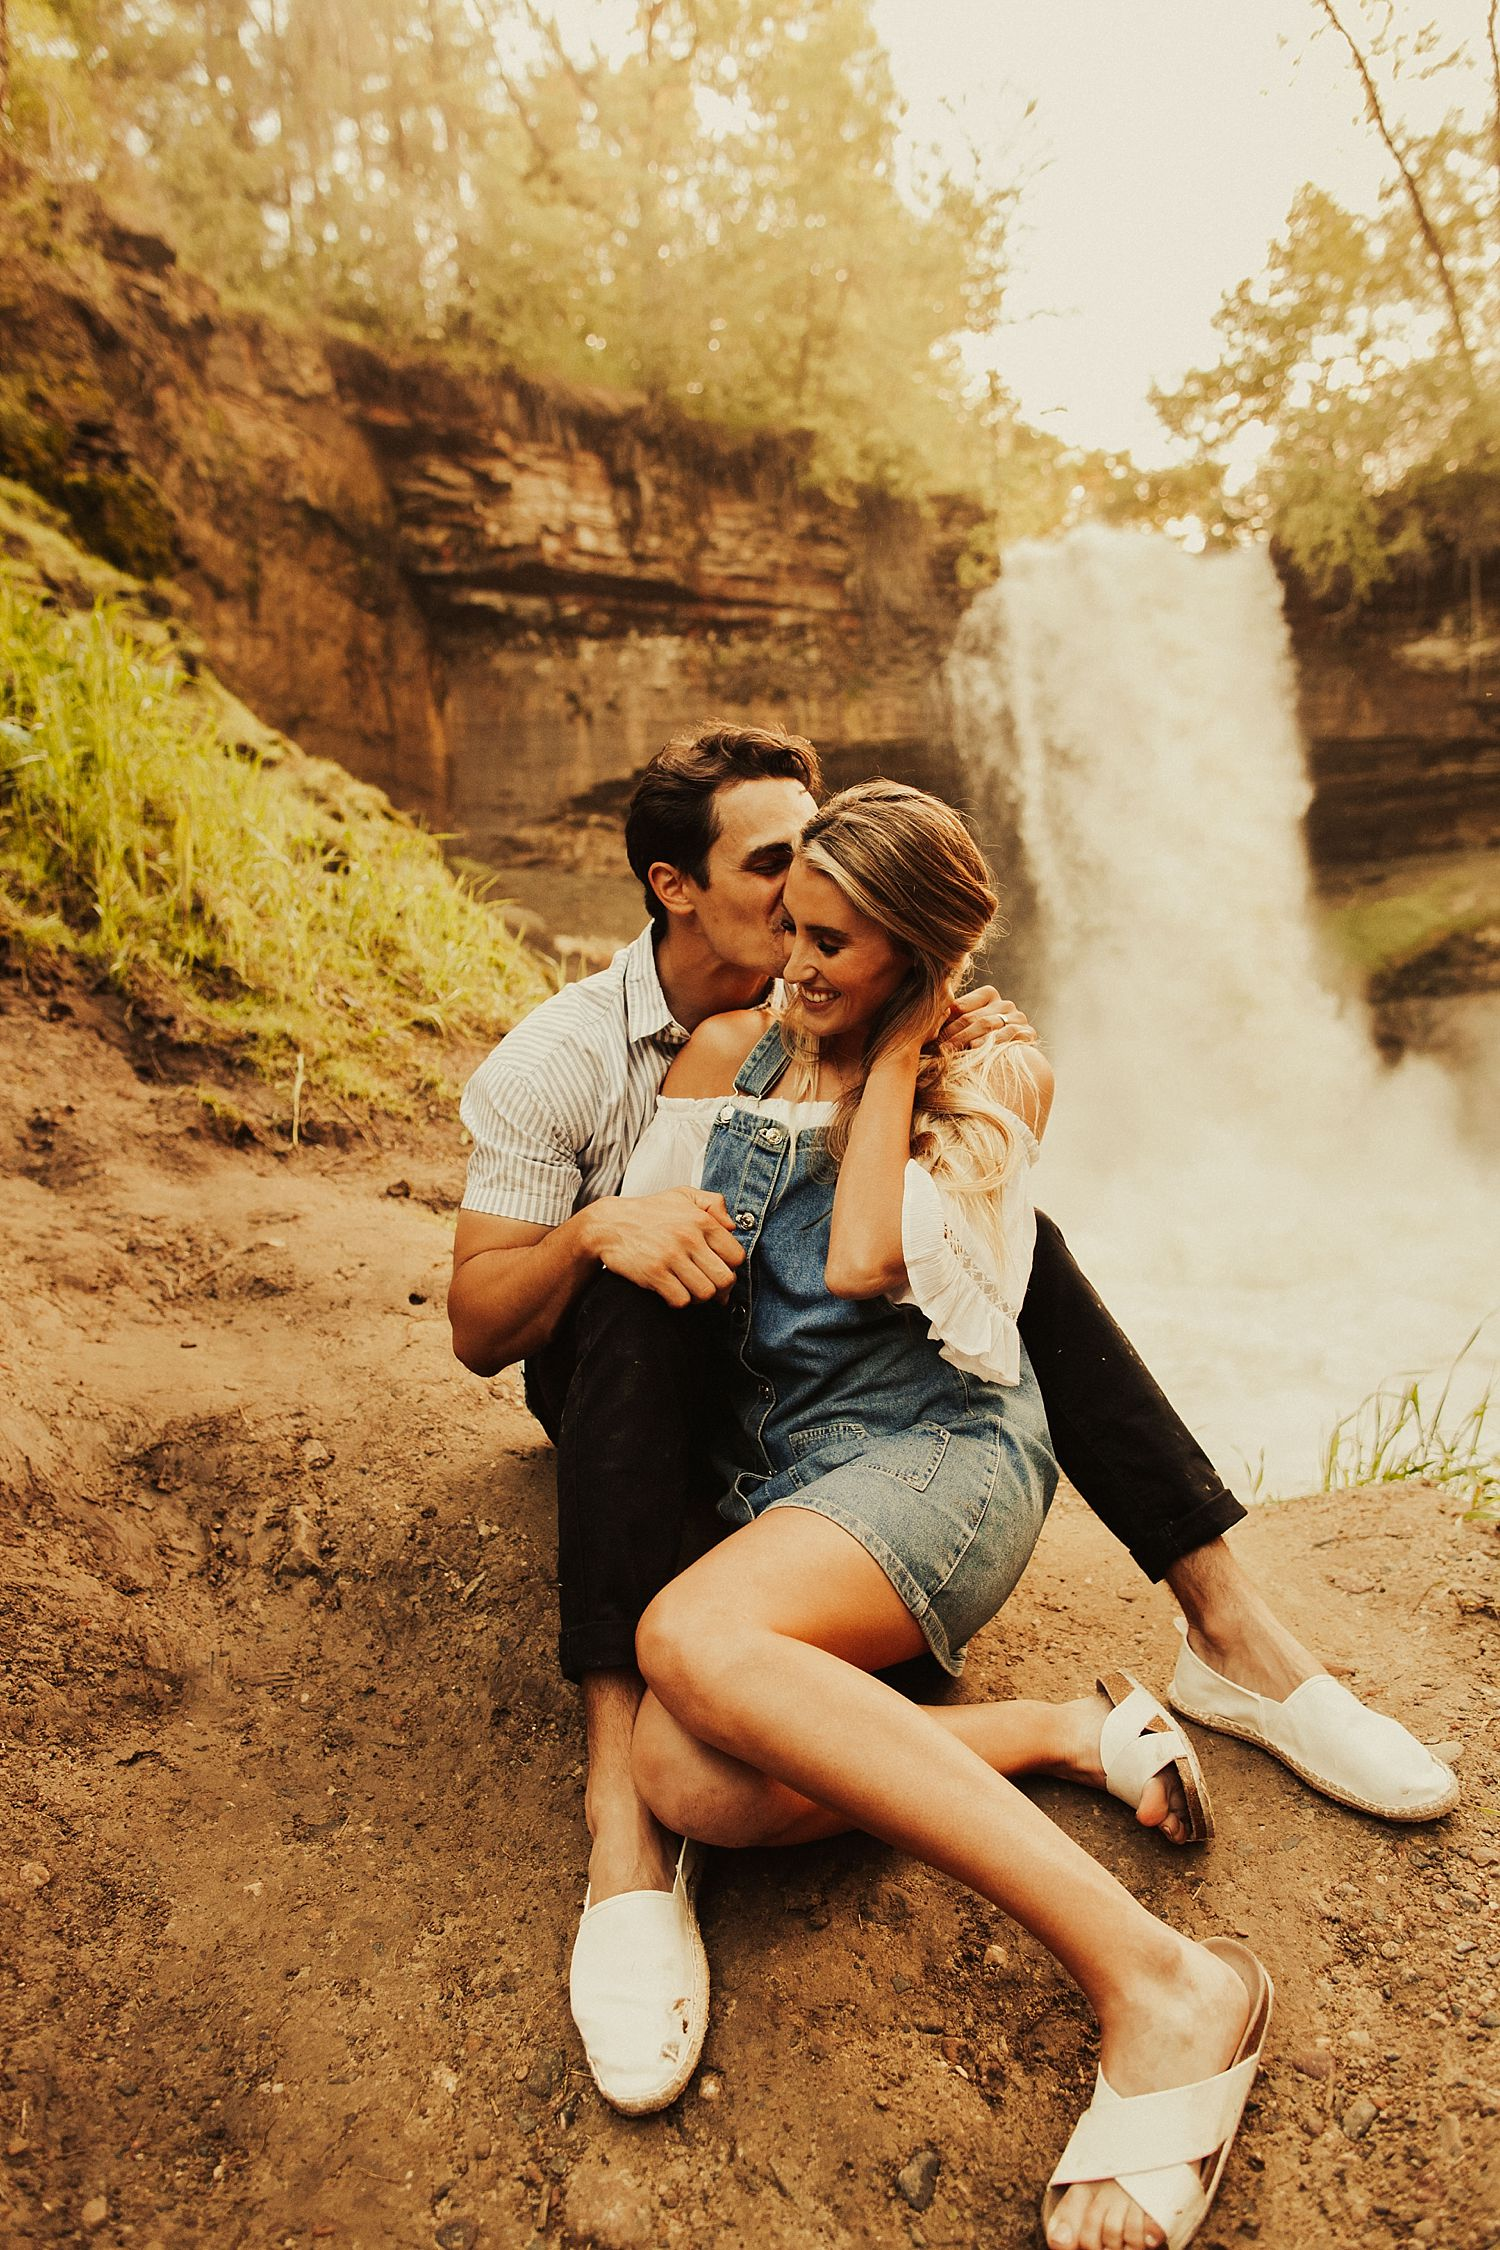 minnehaha-falls-minnesota-couples-shoot_2482.jpg